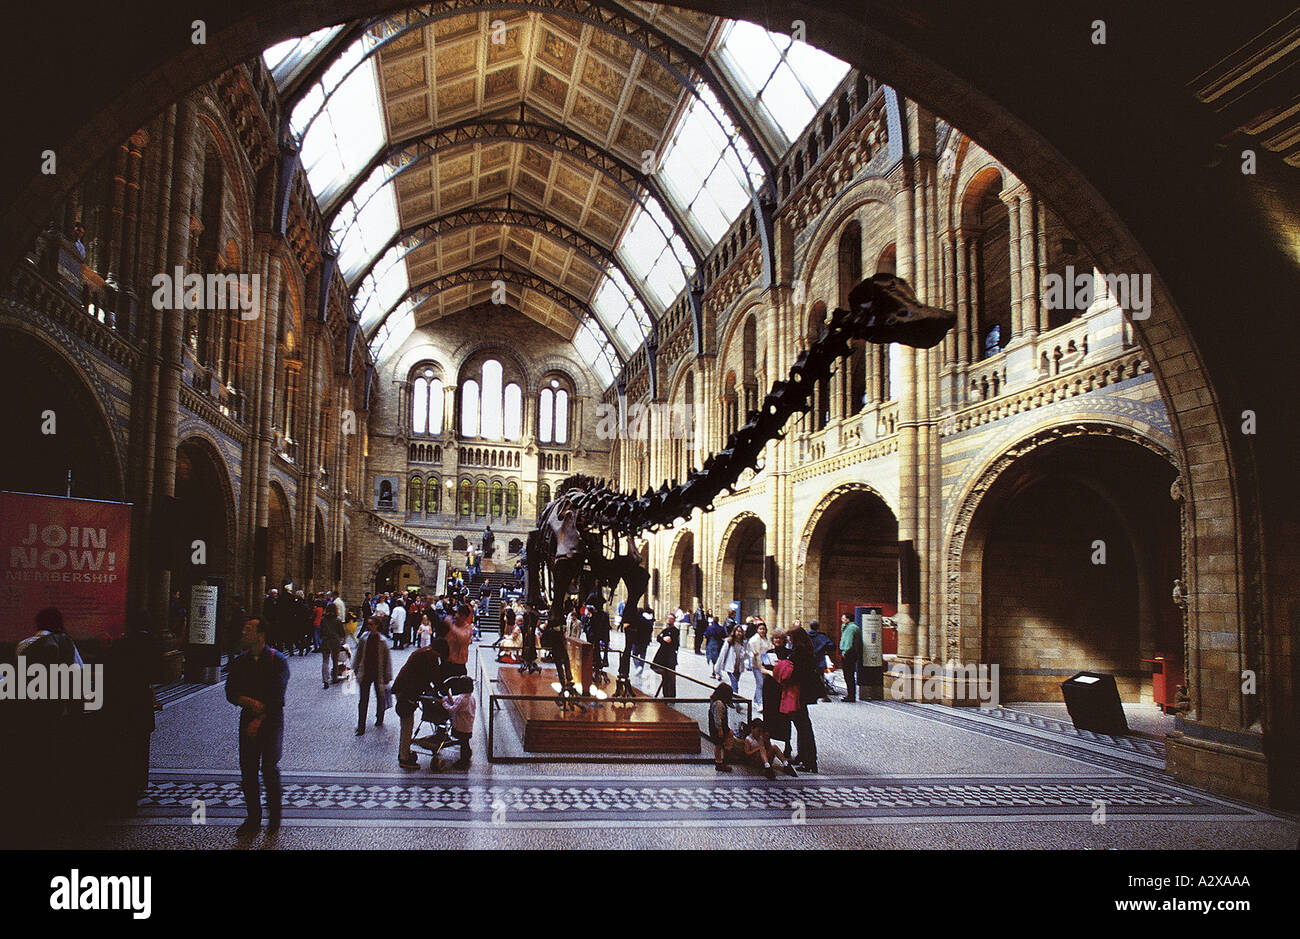 The Central Hall Natural History Museum London - Stock Image